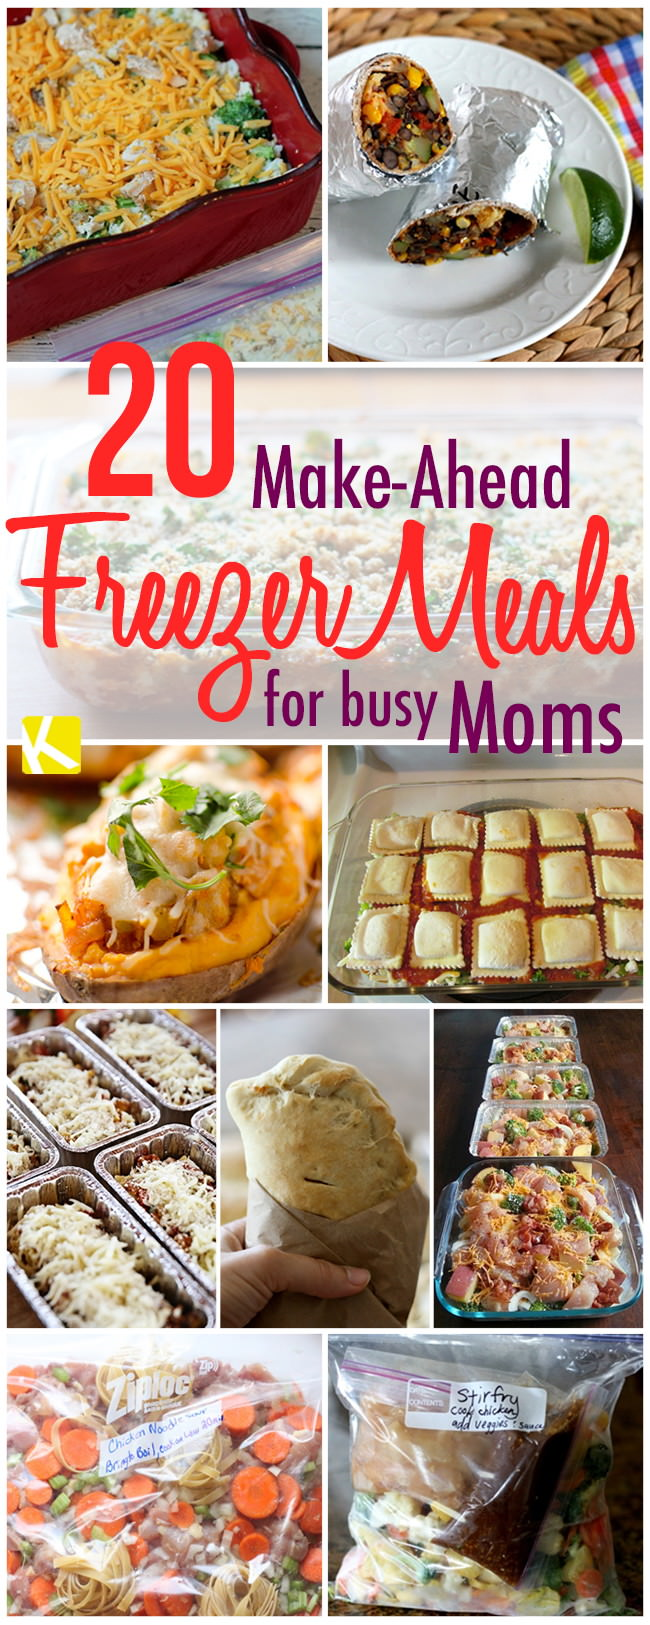 If you're a busy mom these freezer dinner recipes are perfect for you, they are delicious and you can keep them up to 4 months!